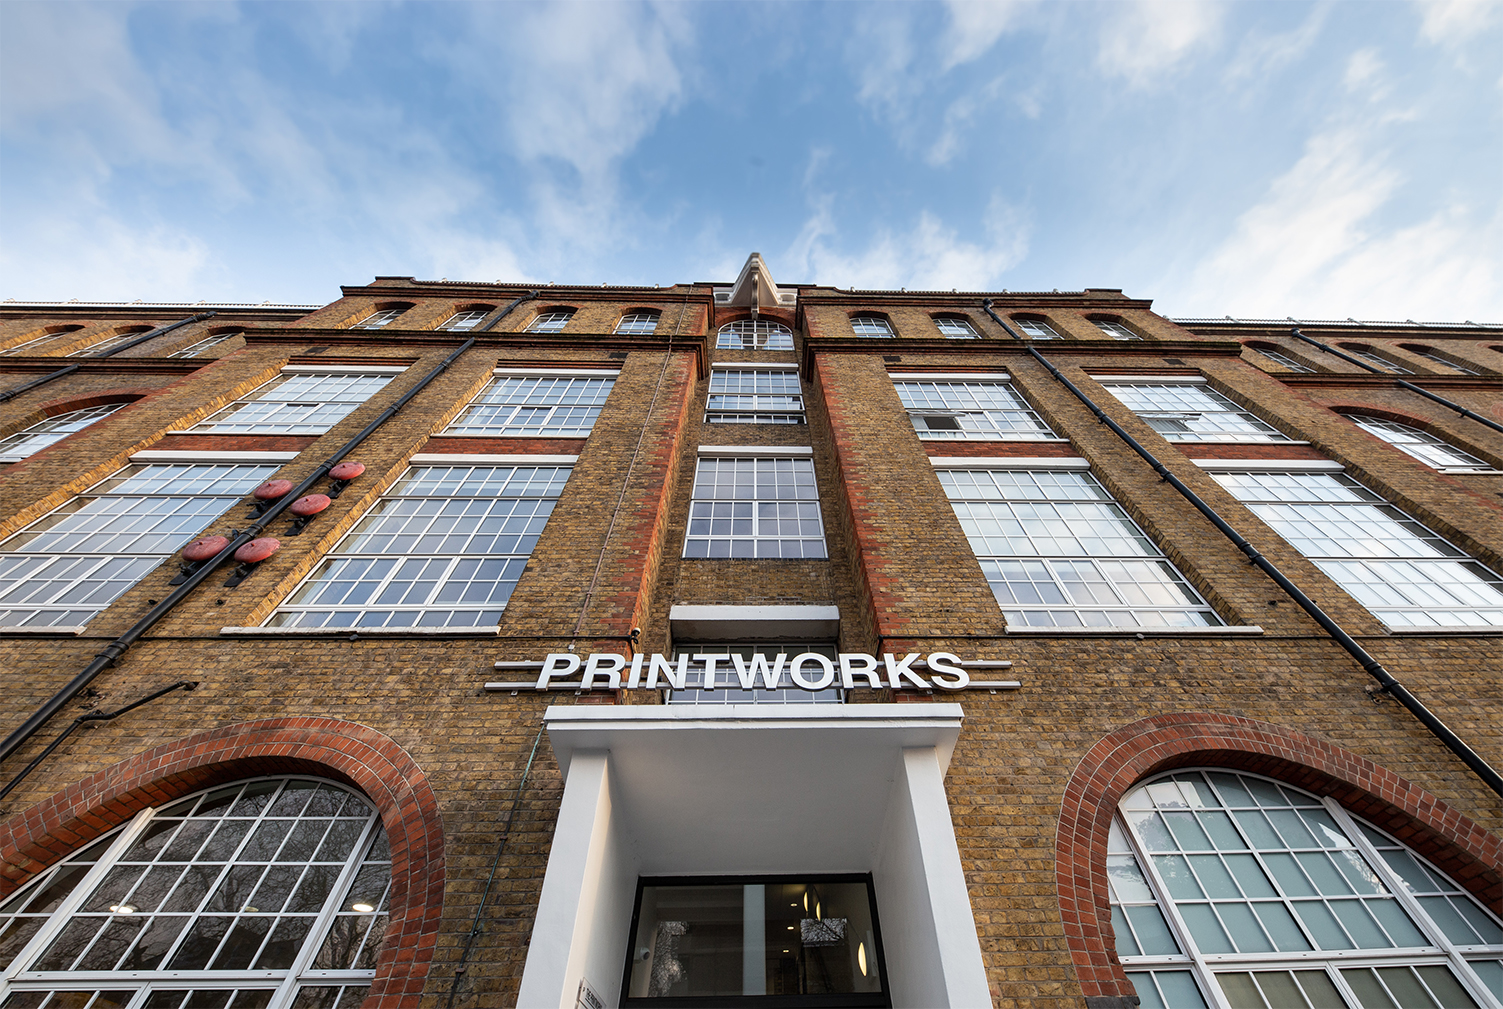 The Printworks, 139 Clapham Road, London